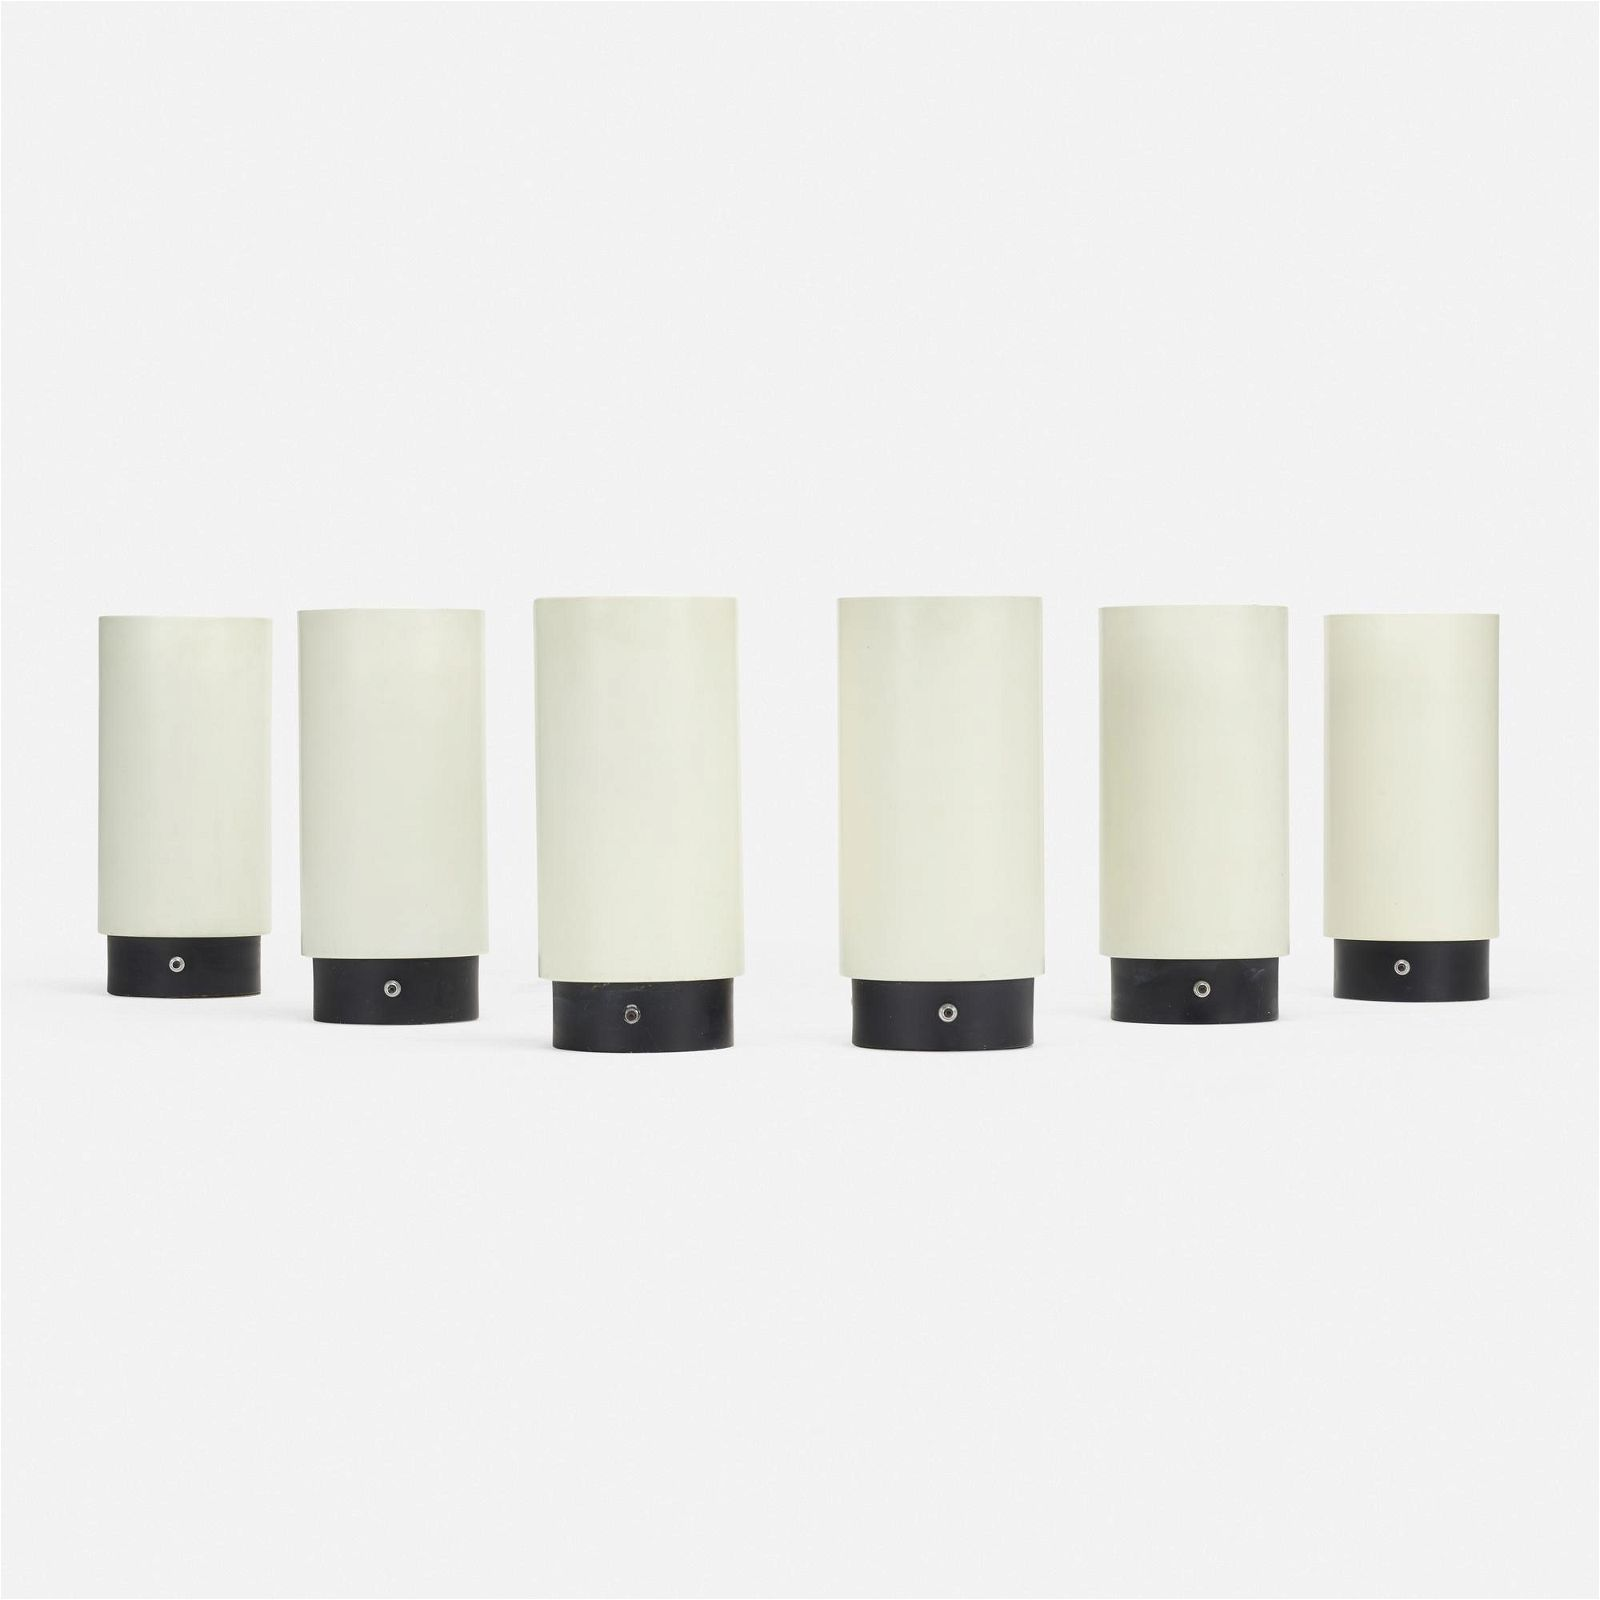 Gerald Thurston, Canister lamps, set of six